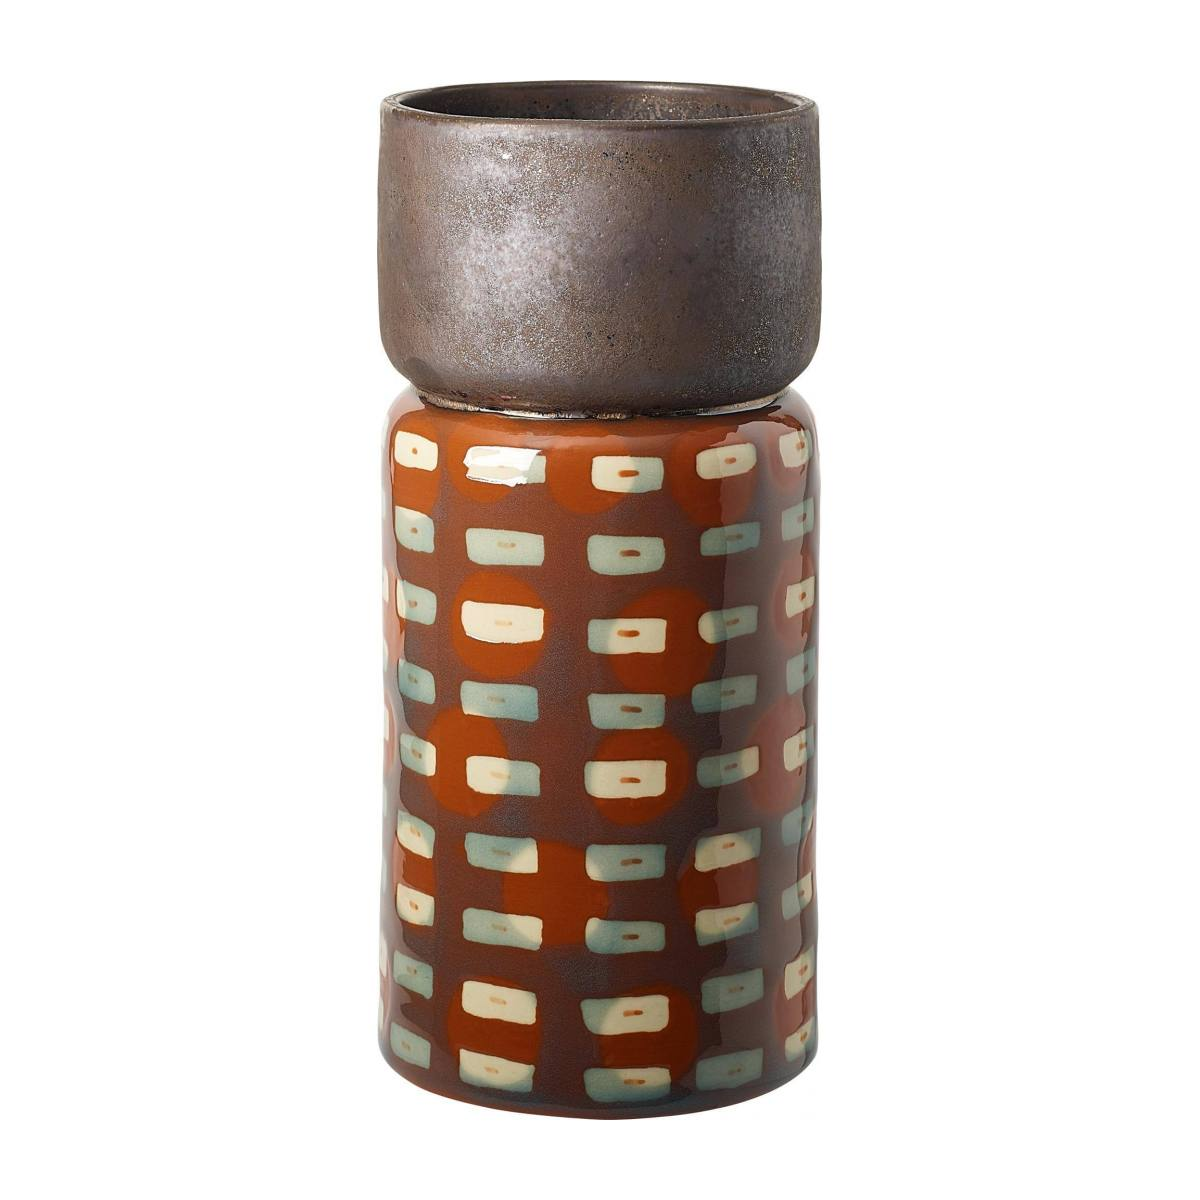 ROUGEUR/STONEW. VASE BROWN L